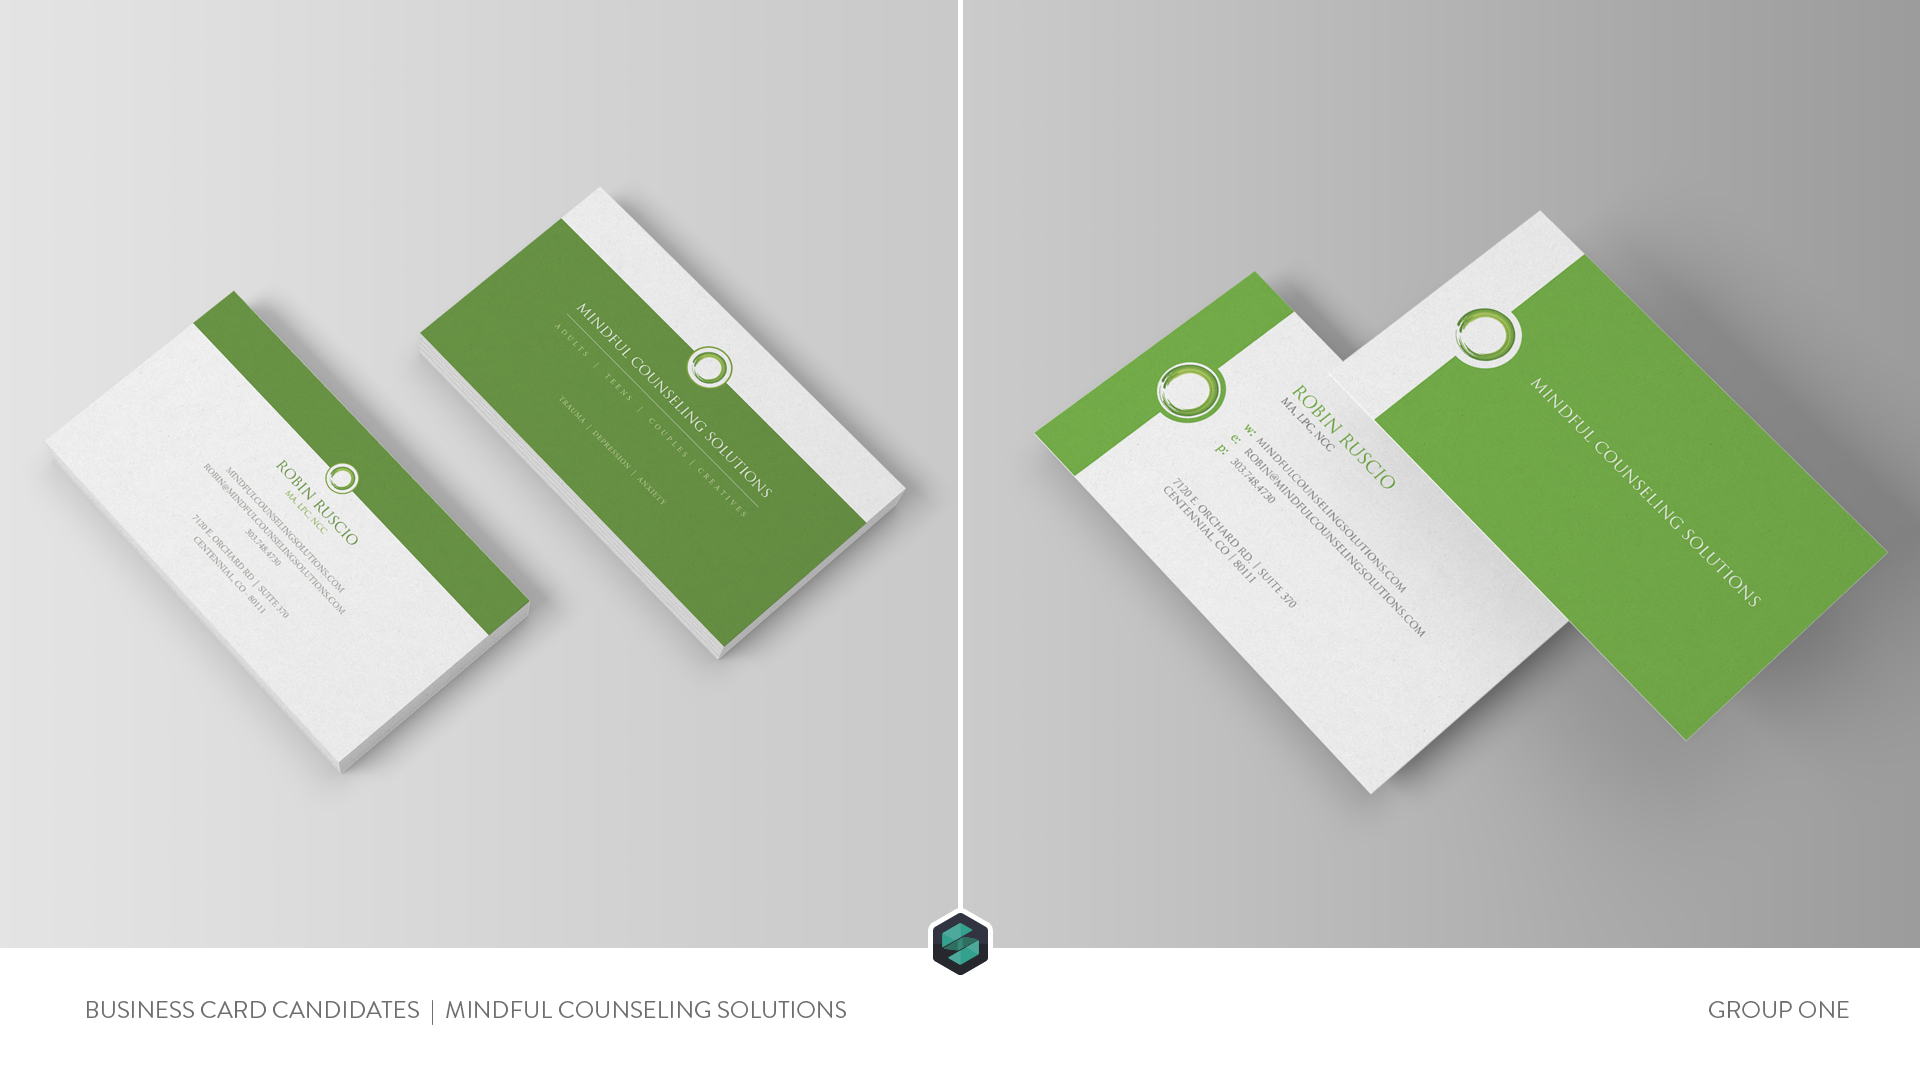 Business Card Design - Mindful Counseling Solutions | Denver, CO.